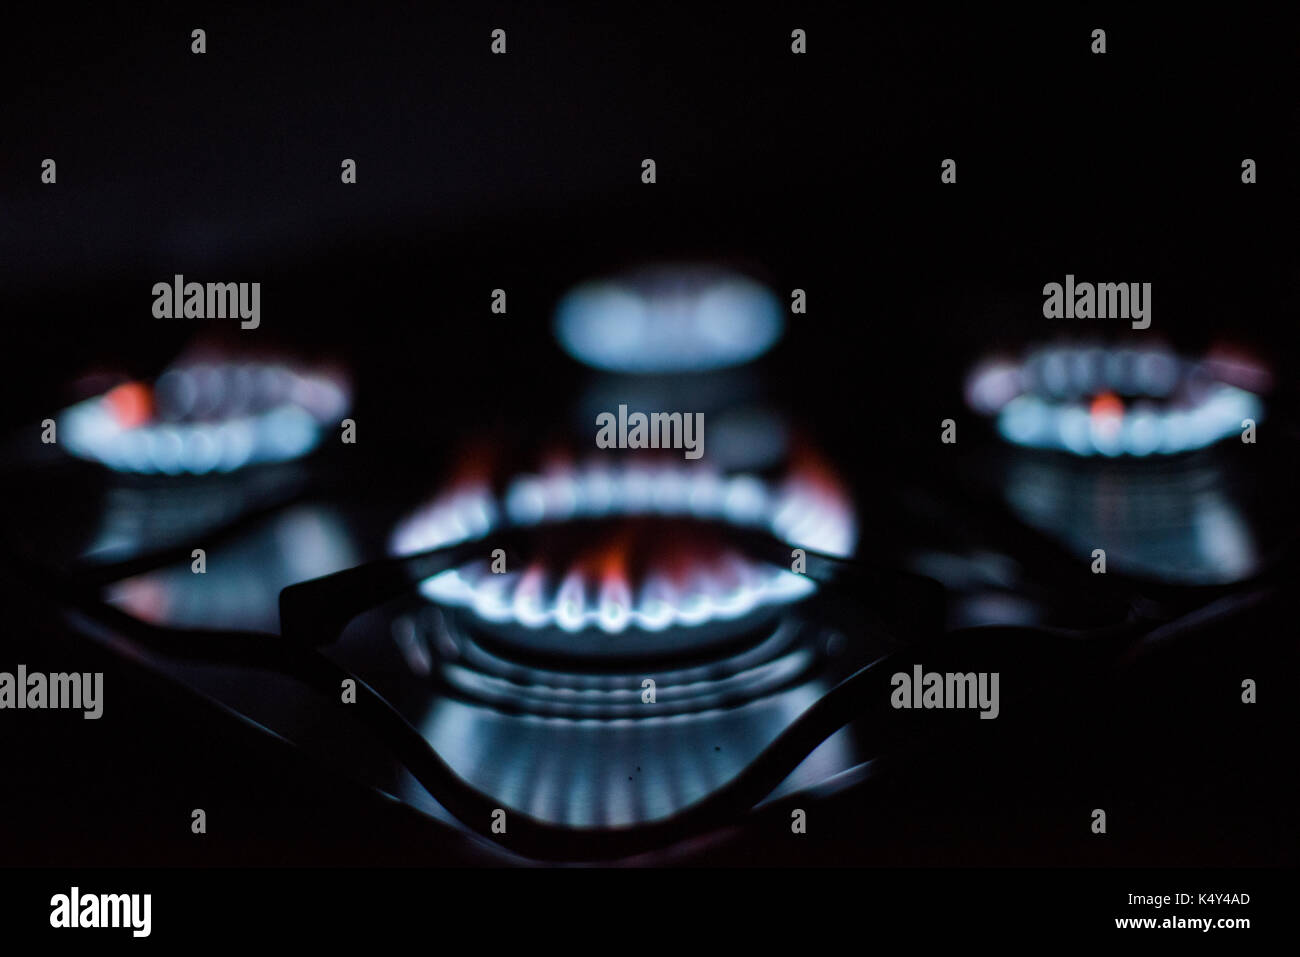 Rings of fire: four lighted gas stove burners. - Stock Image